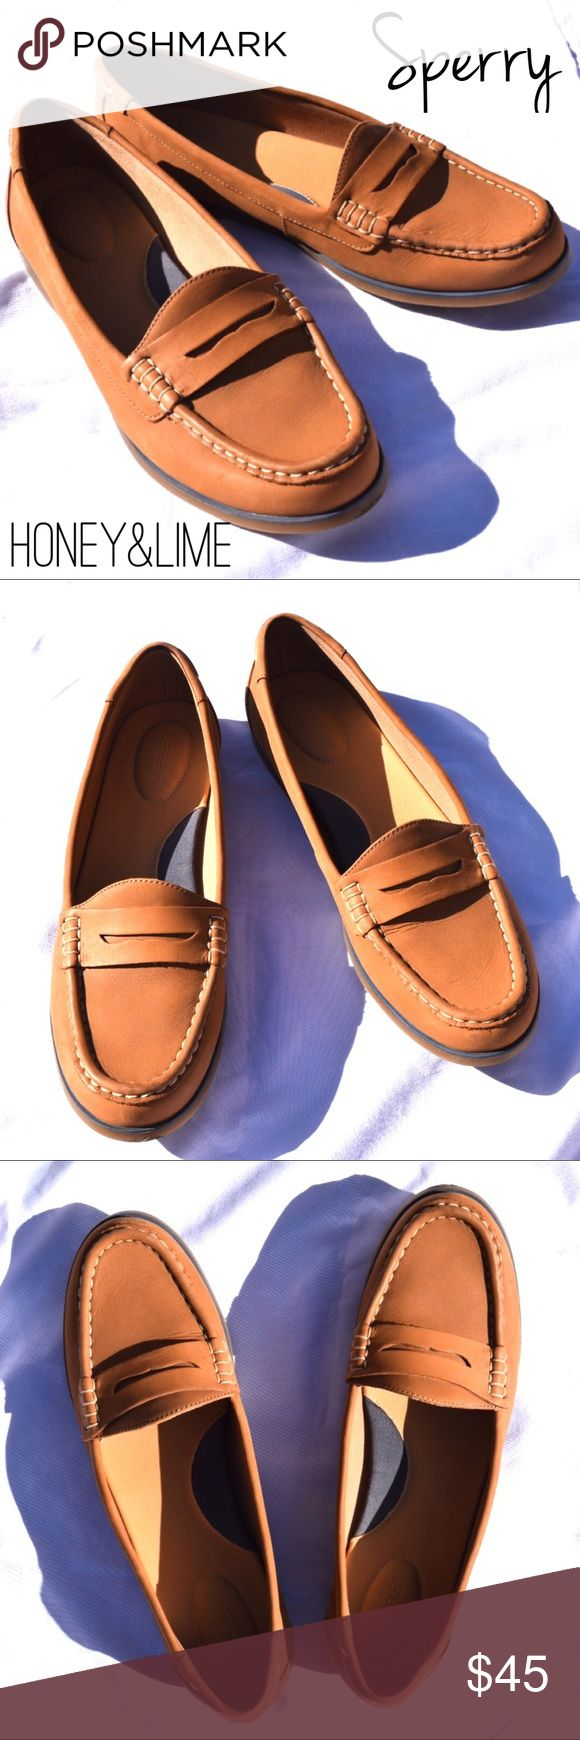 Sperry Loafers Sperry | loafers | like new, barely worn | love these, just not the right size for me! Sperry Shoes Flats & Loafers